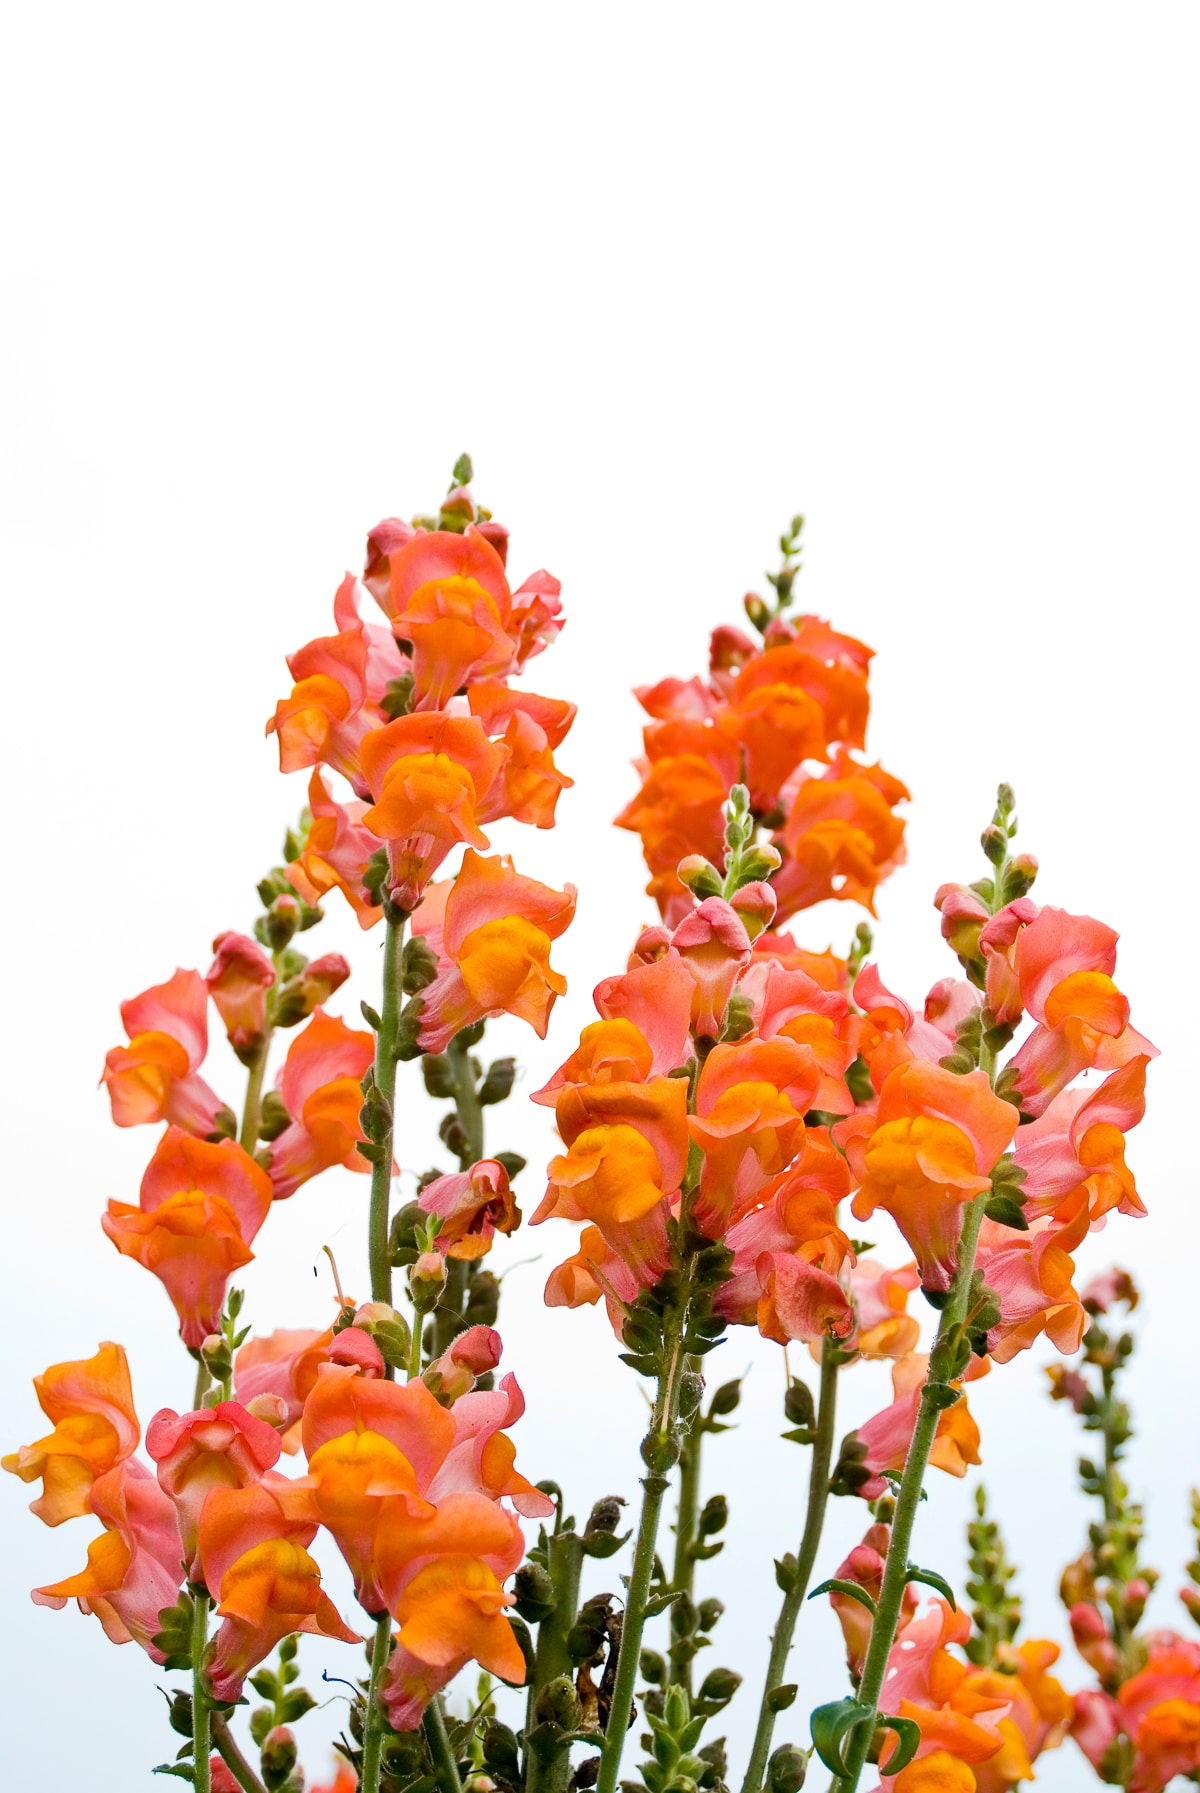 Orange snapdragons against a bright white background